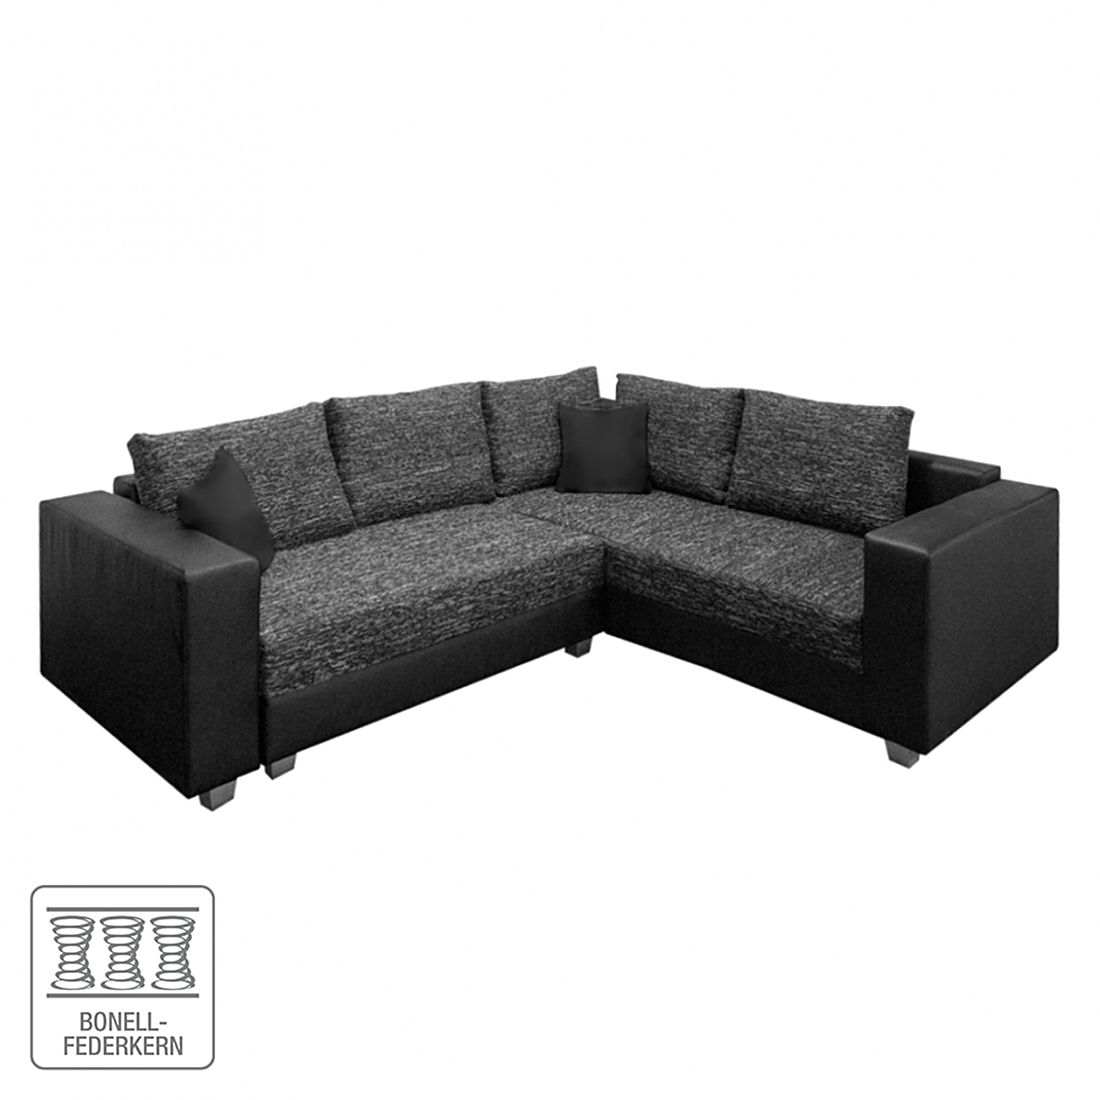 ecksofa mit schlaffunktion ausverkauf. Black Bedroom Furniture Sets. Home Design Ideas